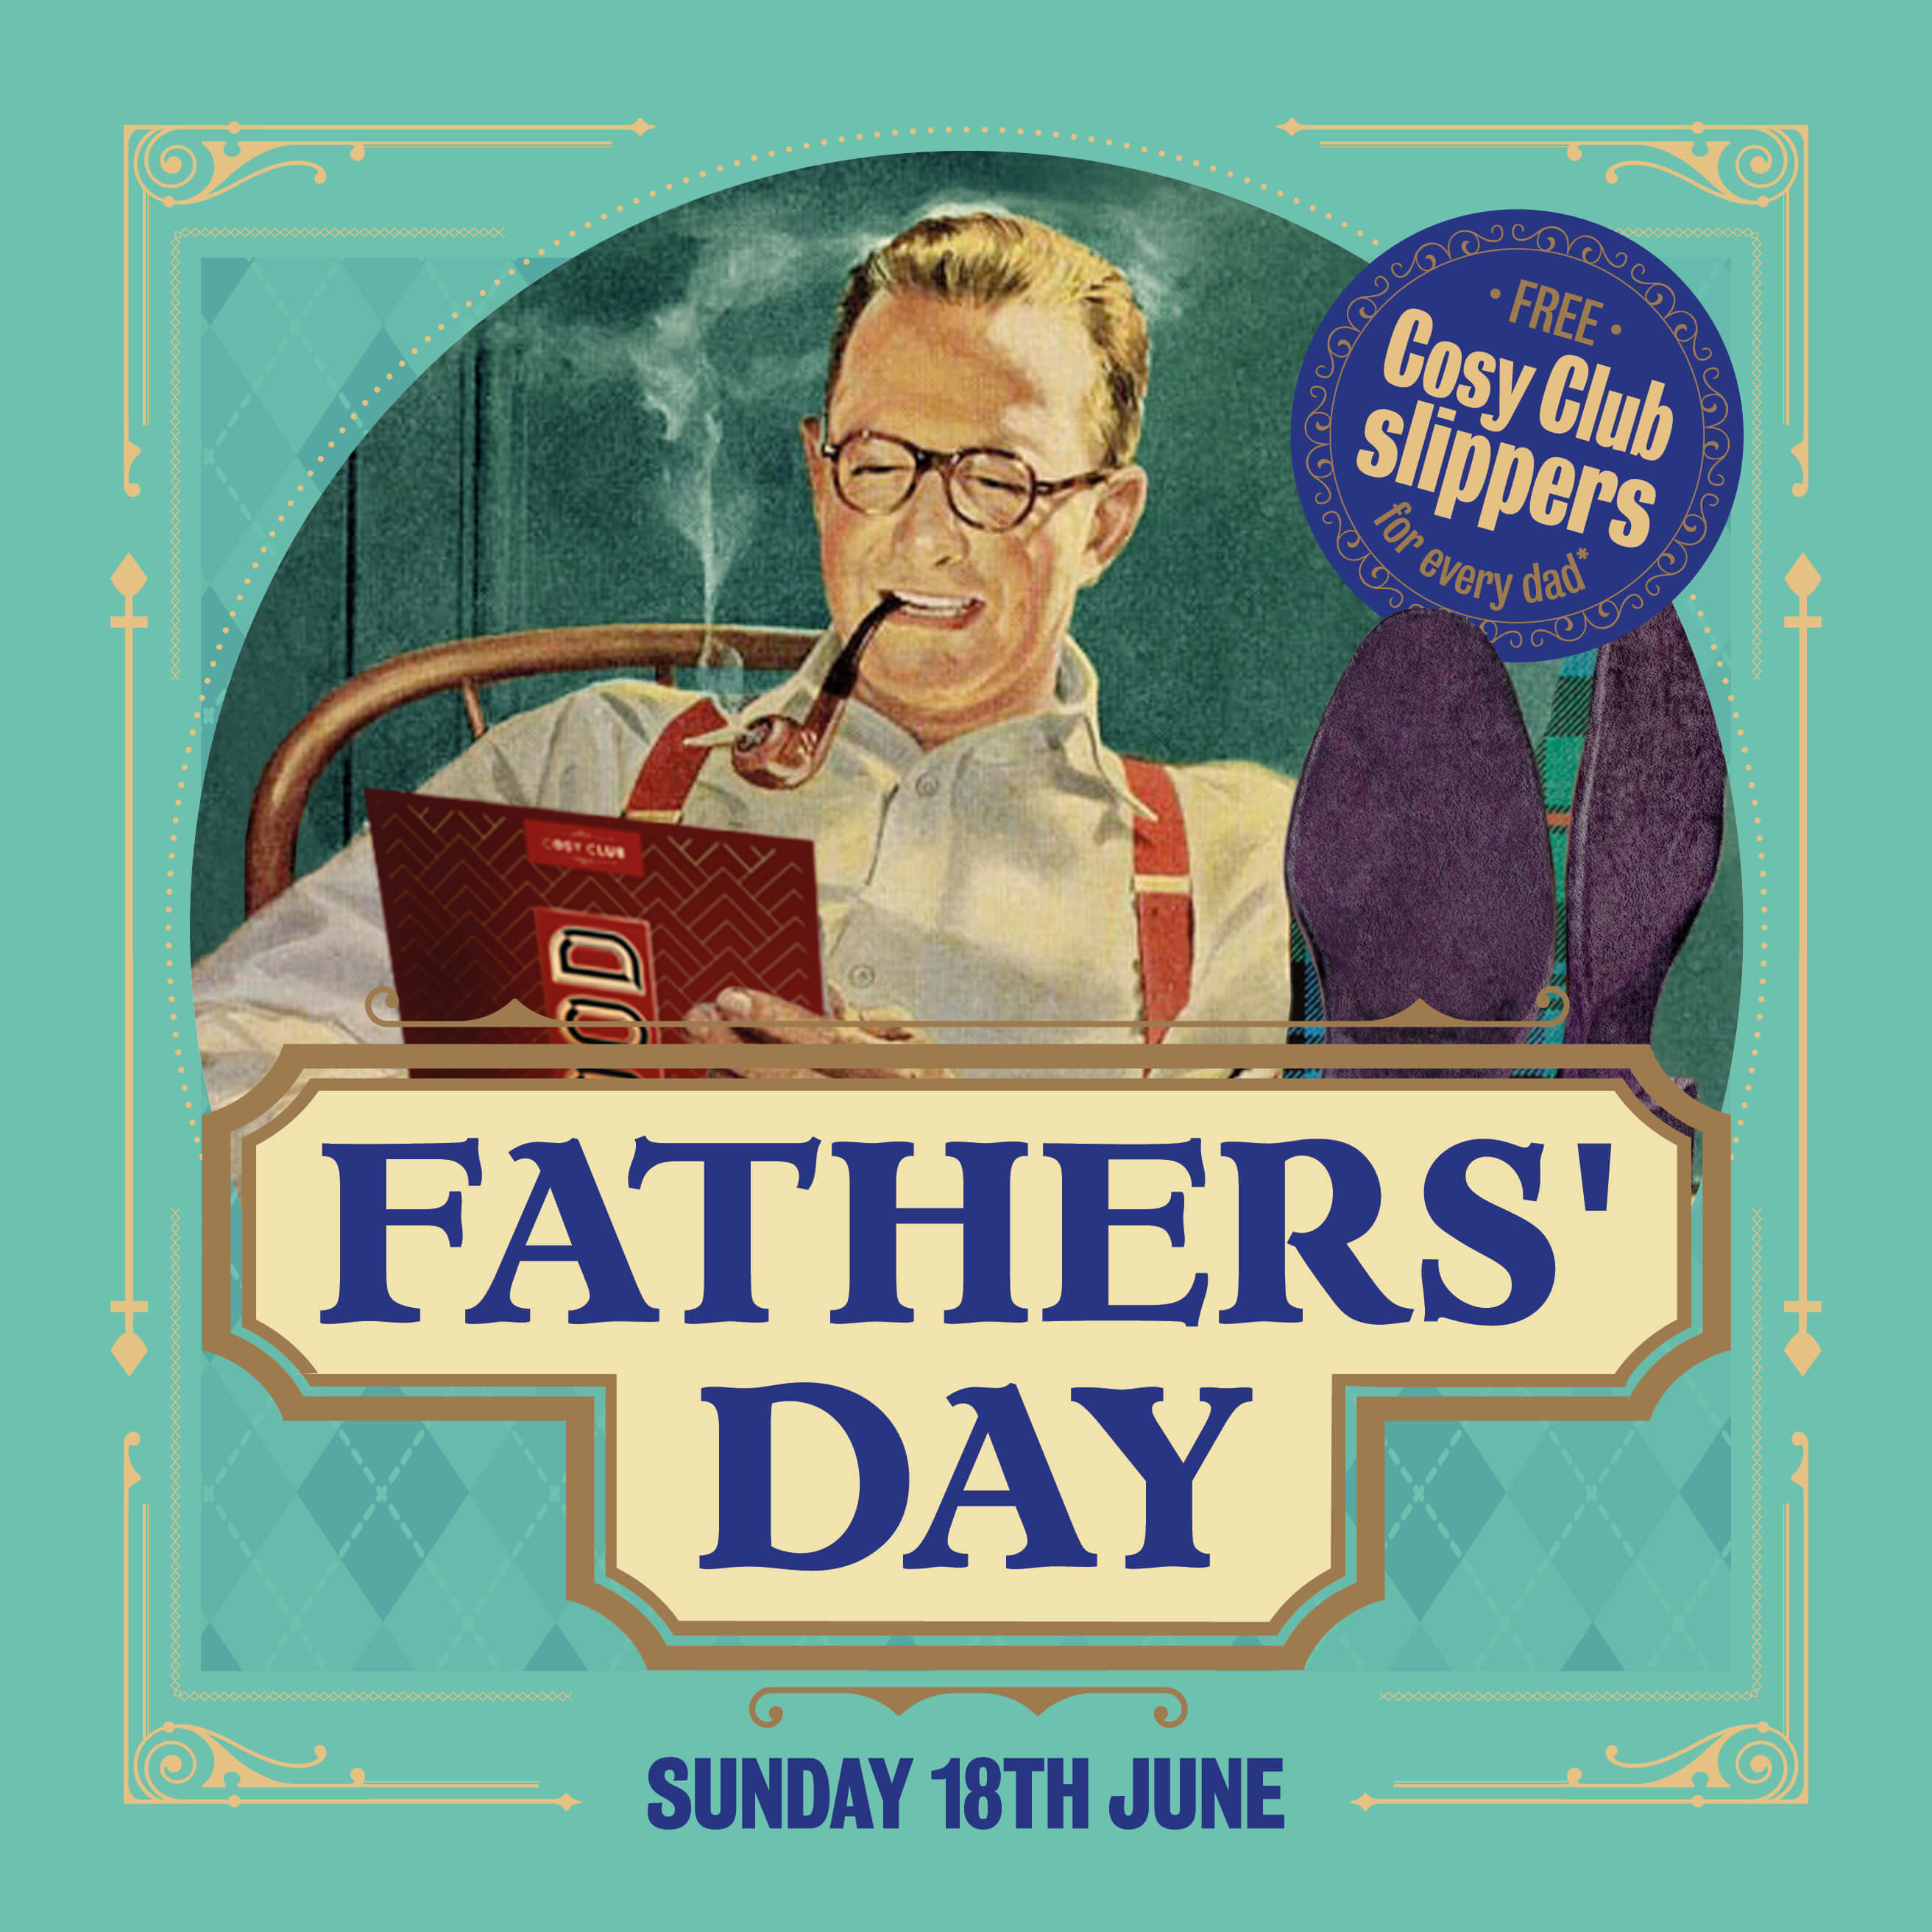 Father's Day at Cosy Club